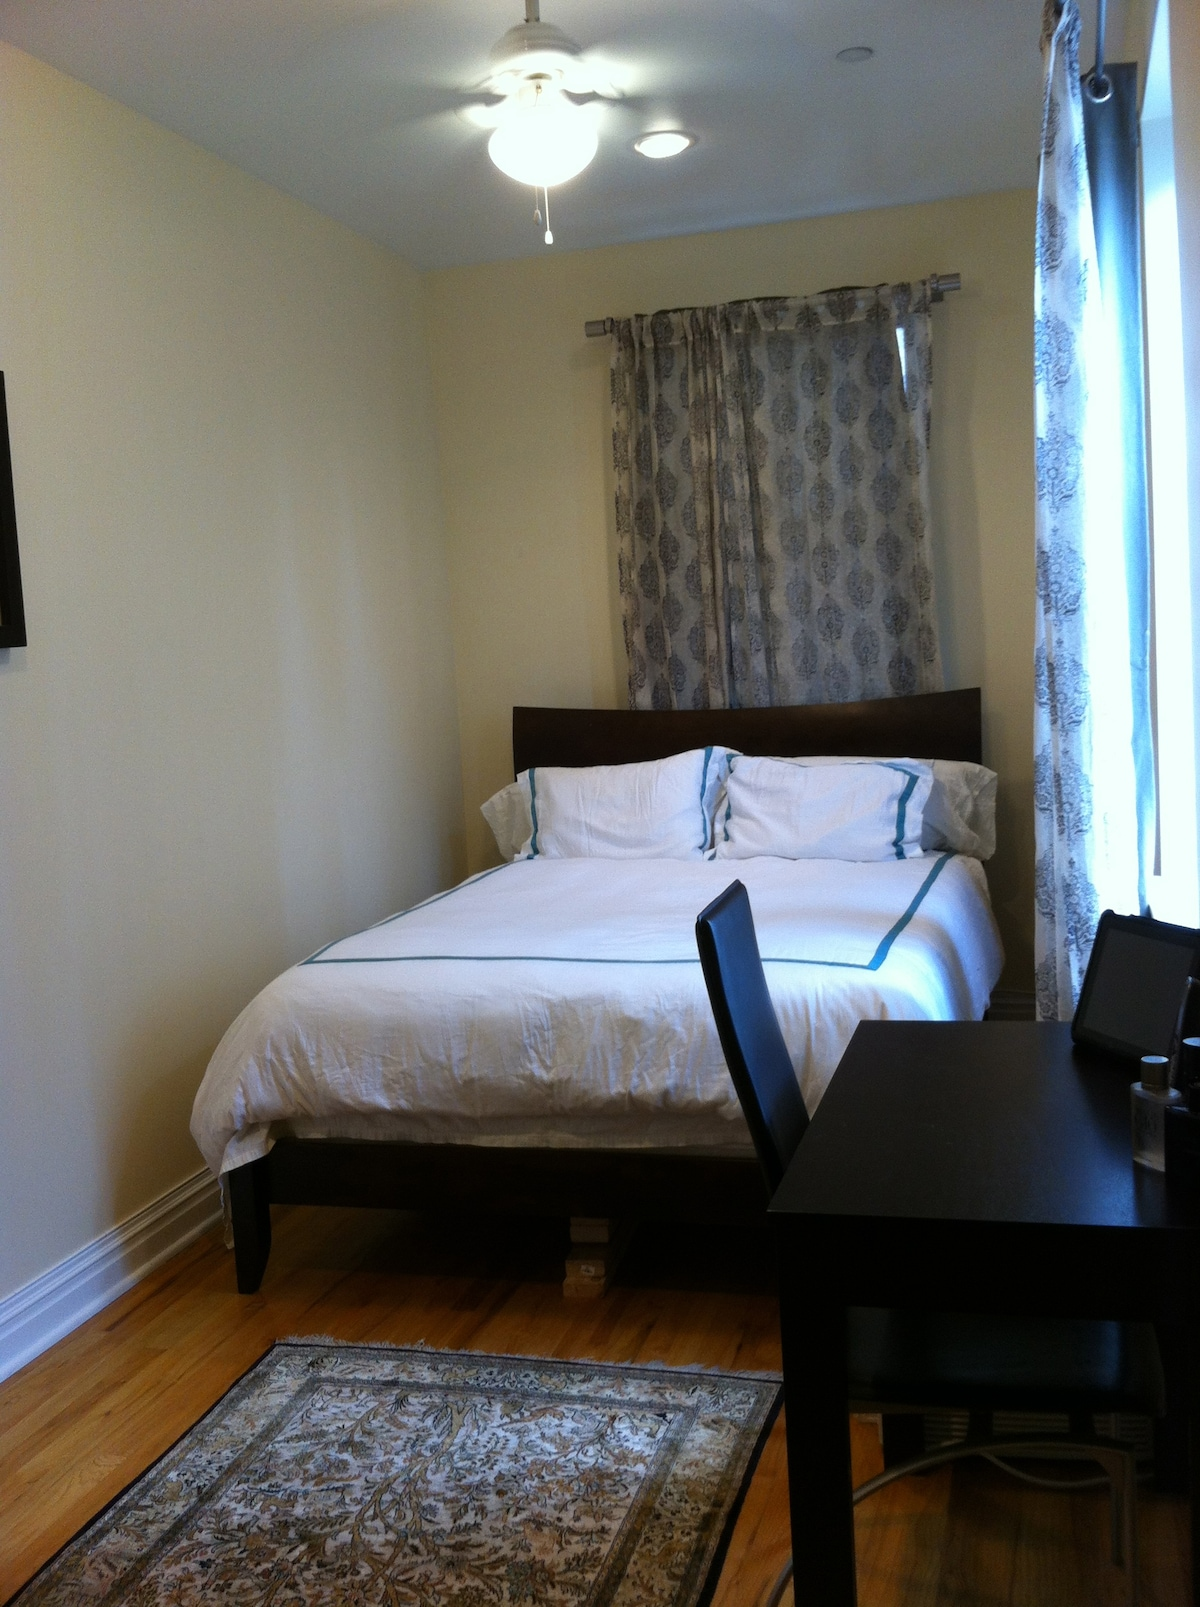 Bedroom, plenty of light, and nice view of the intersection of 72nd and Broadway.